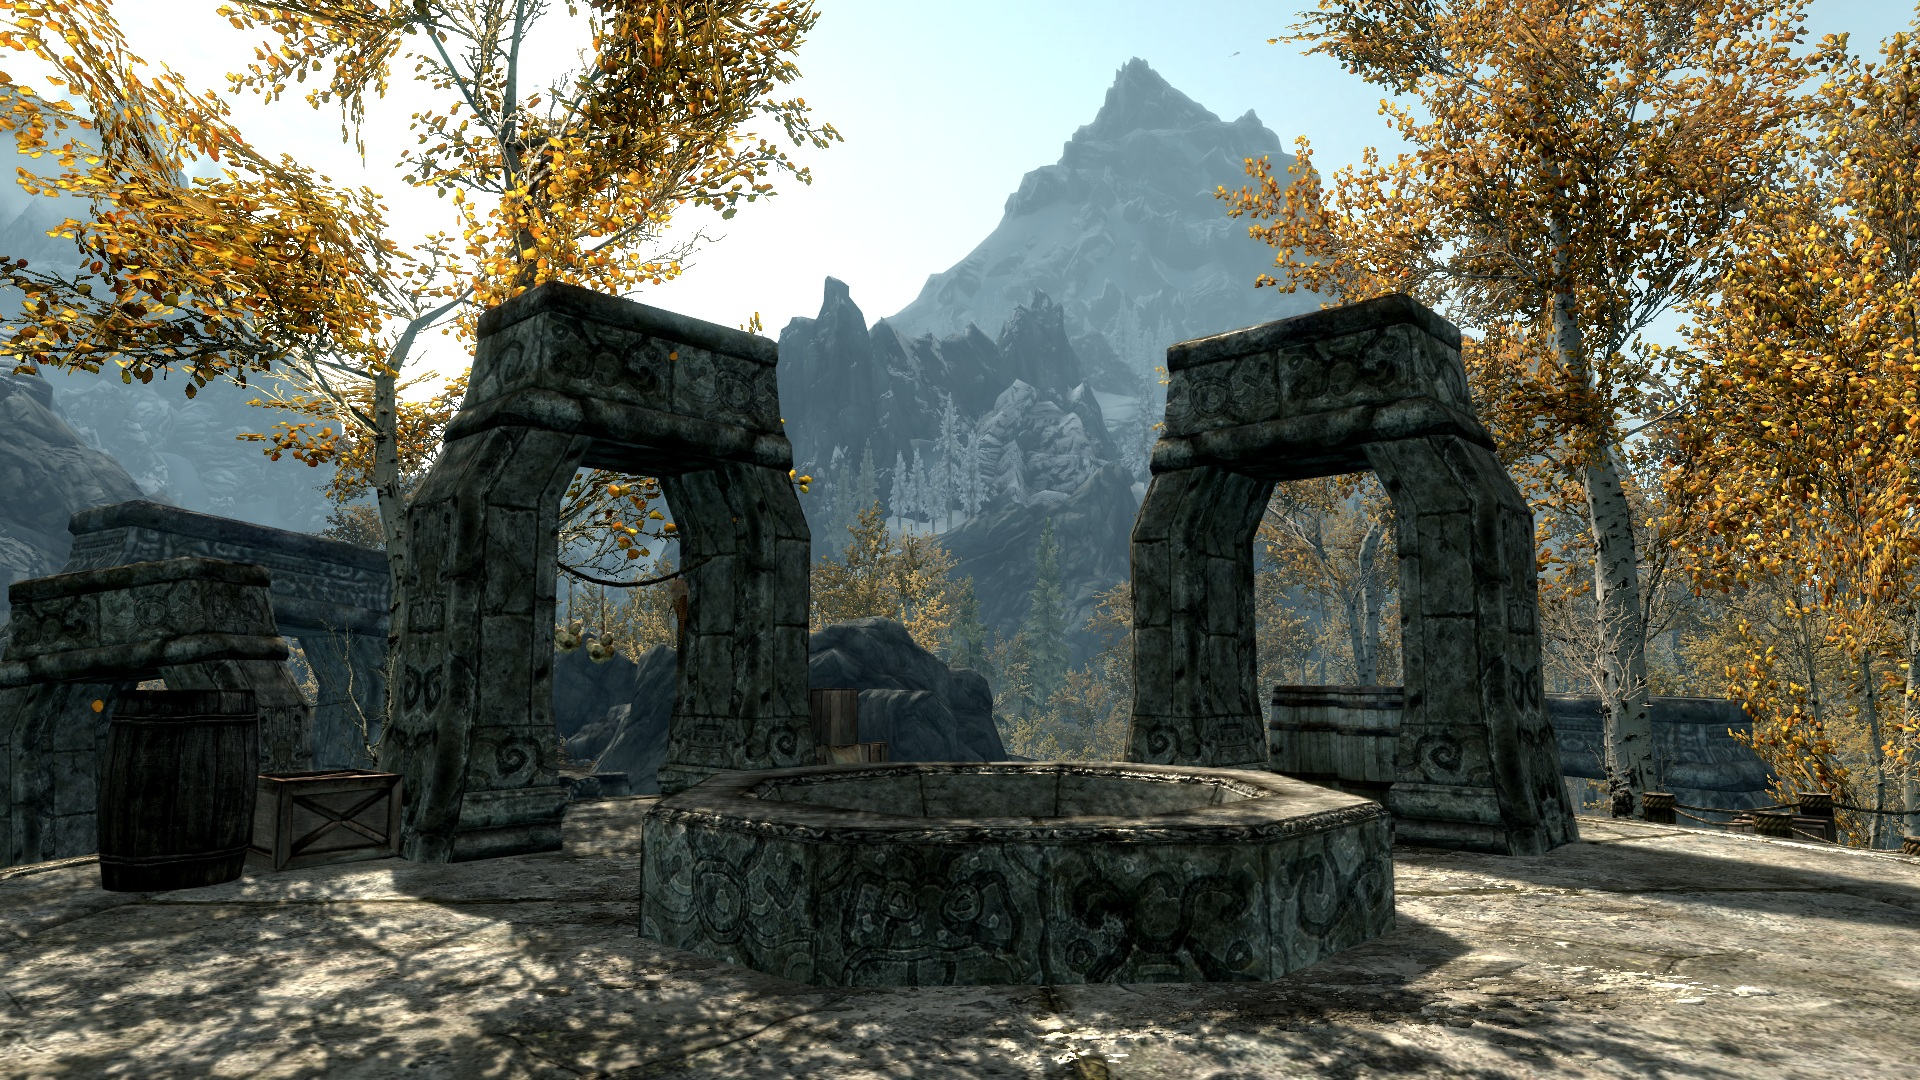 Ruins of a Temple in the Game 819.72 Kb